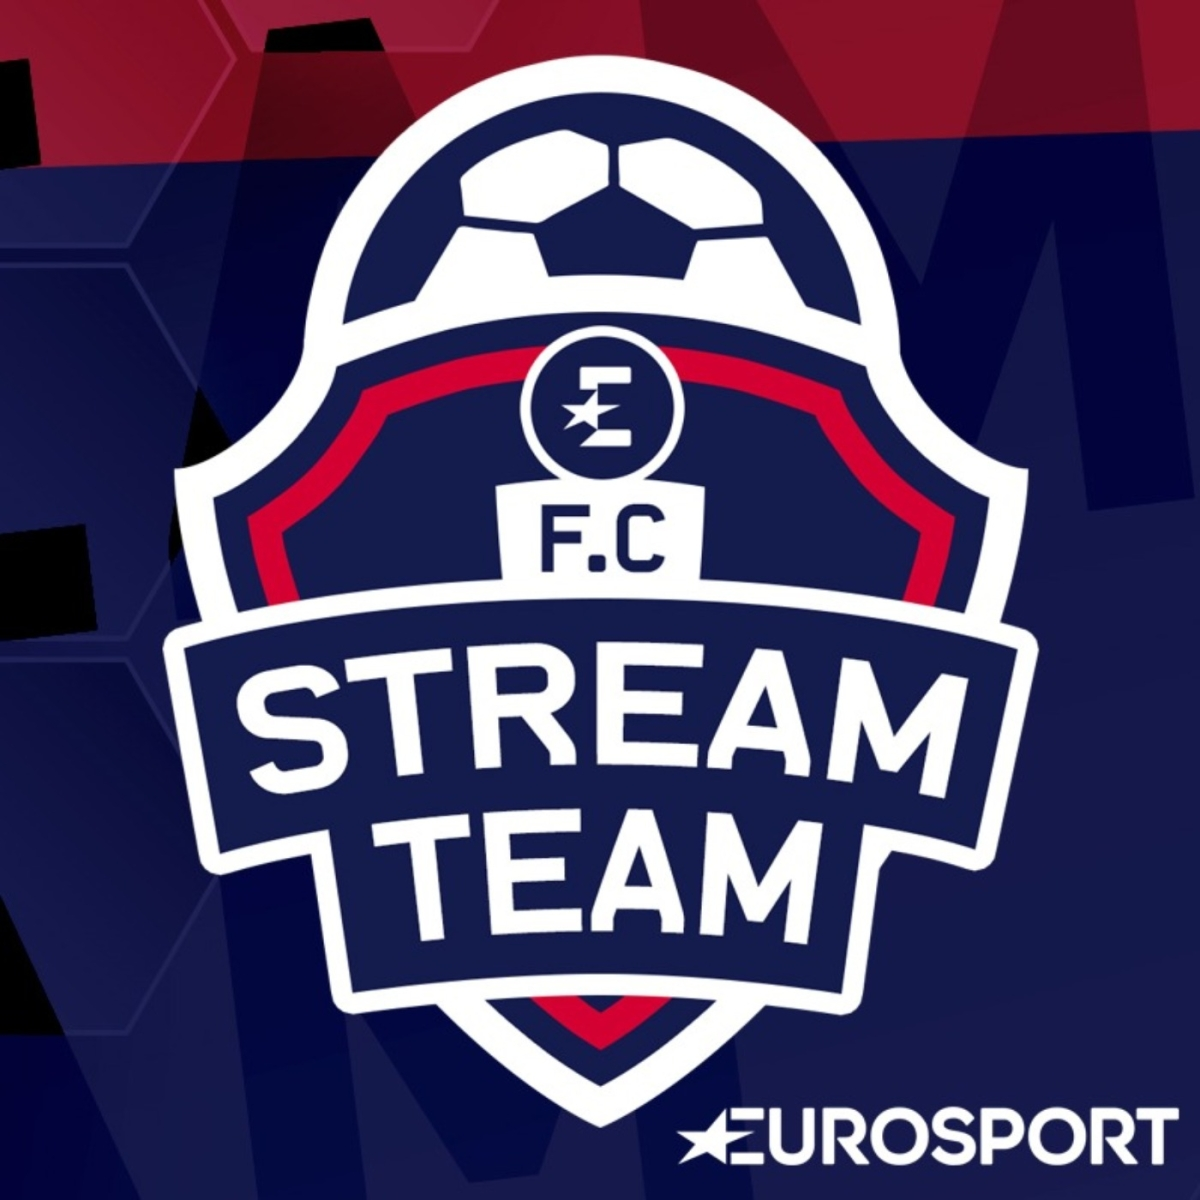 Villas-Boas pète les plombs, la supercherie The Best/Messi, la fin pour Galtier ? Ecoutez le FC Stream Team